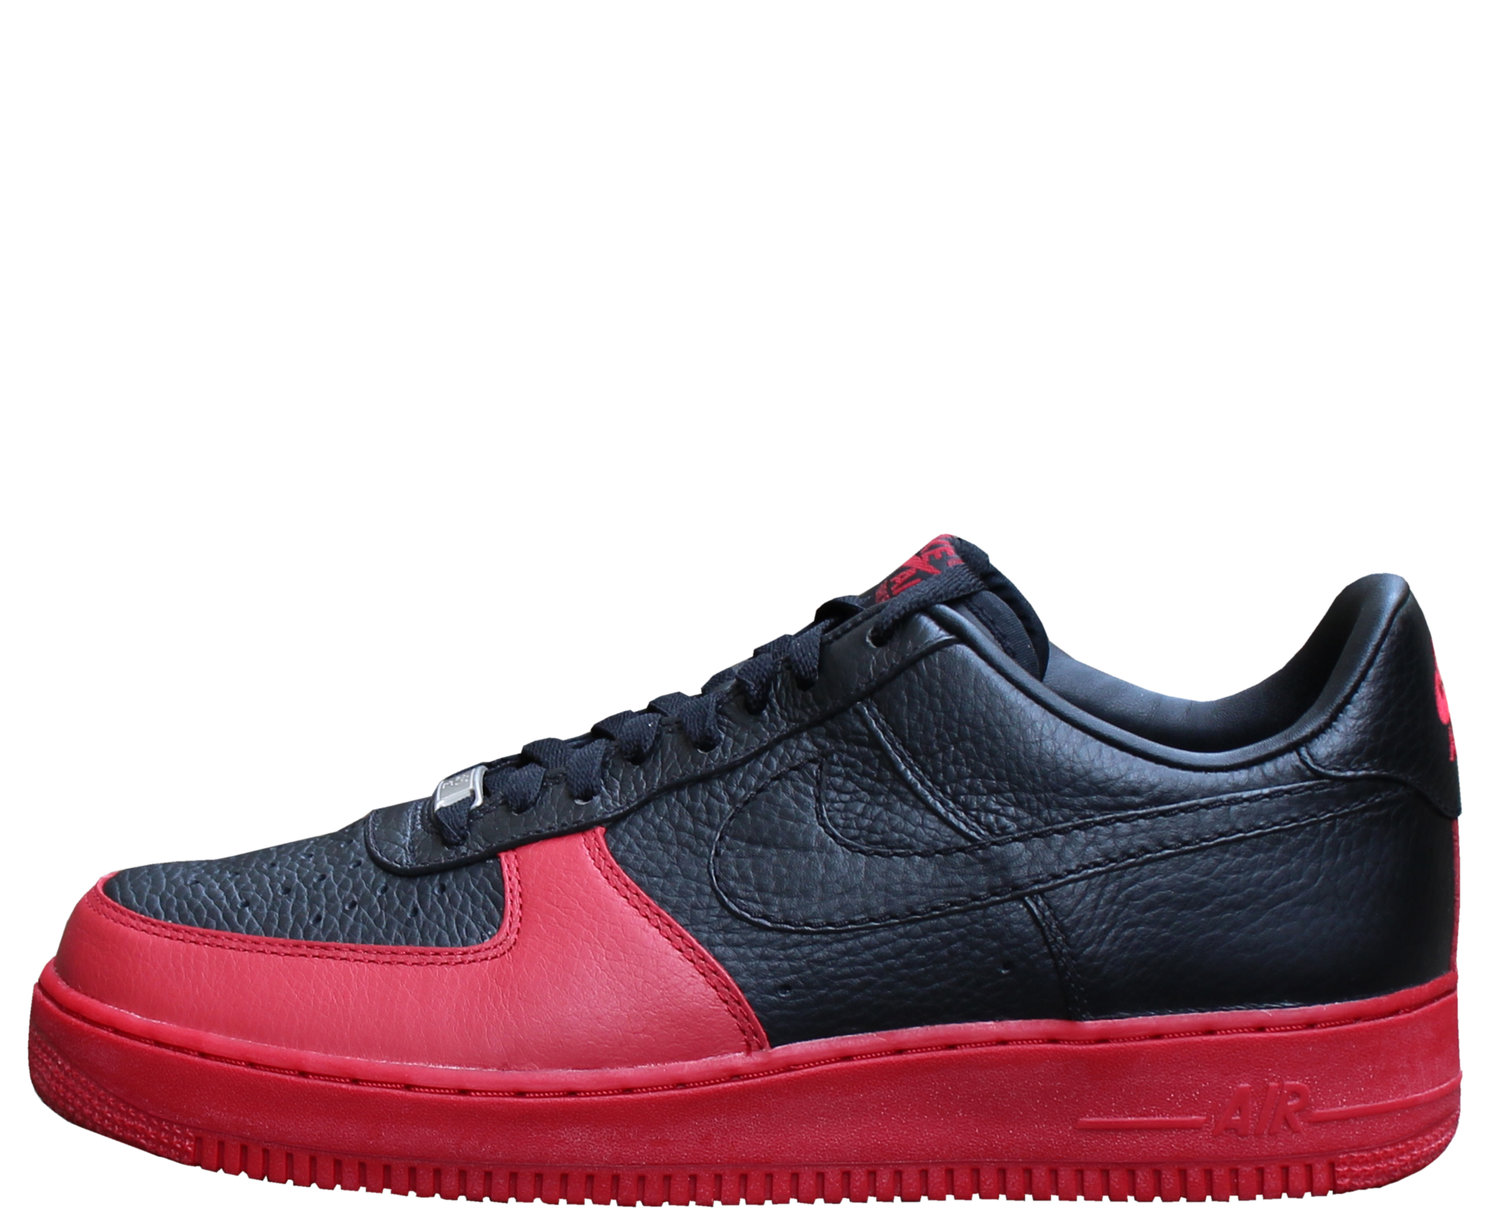 Nike Air Force 1 Low Black Black Varsity Red Size 8 5 Ds Roots